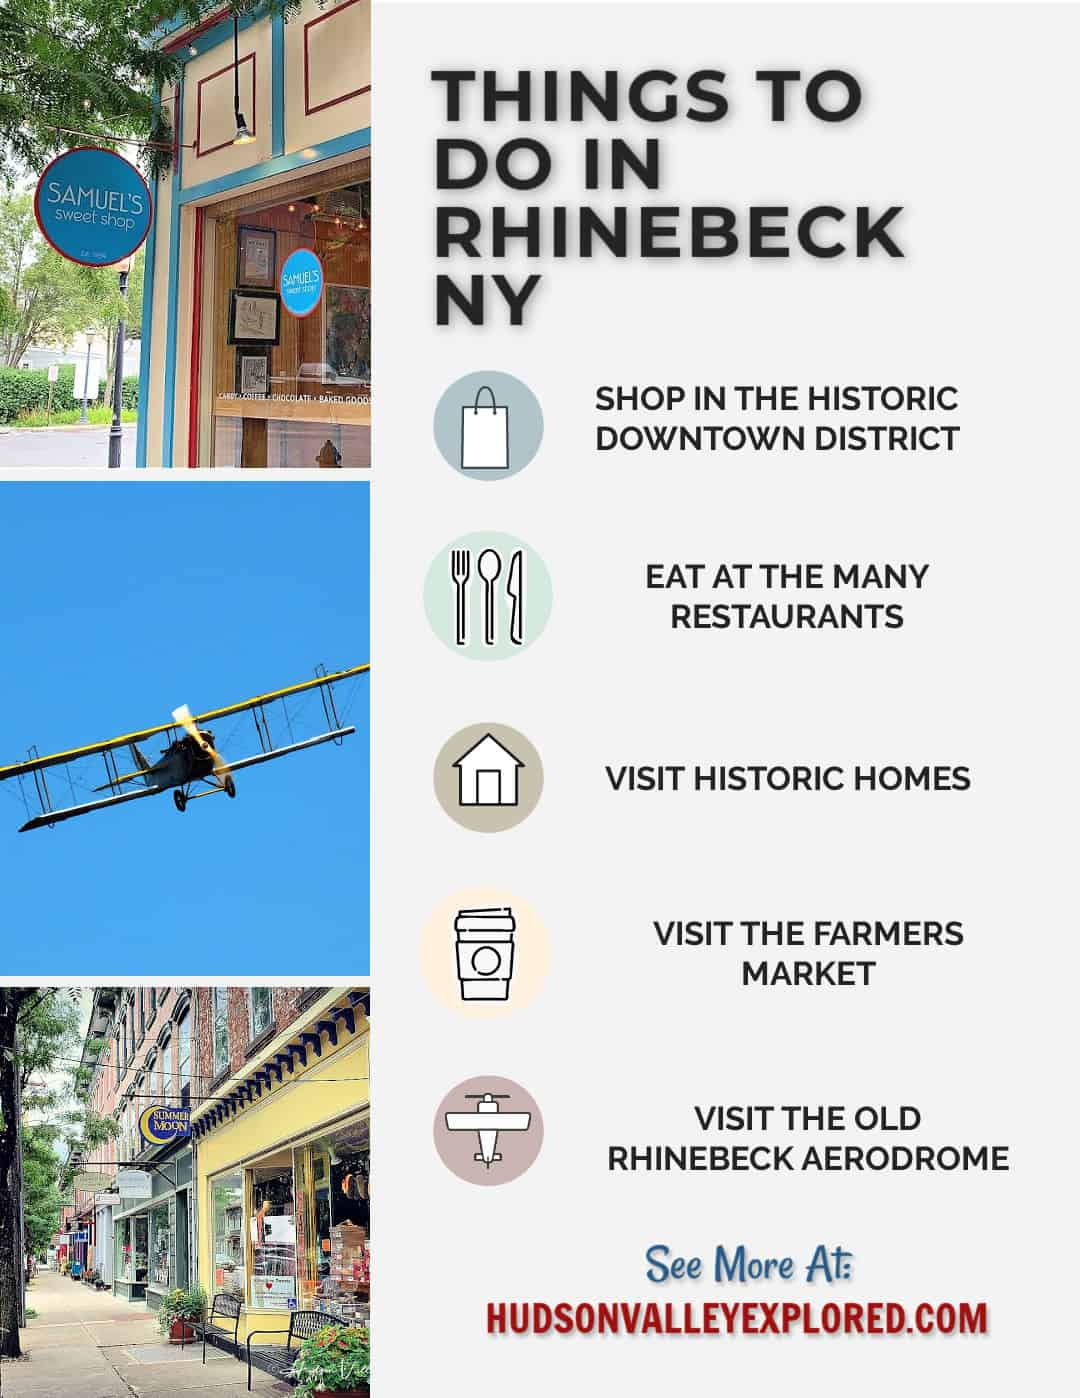 Discover all the great things to do in Rhinebeck NY. This great small town in Dutchess County NY is home to a historic district full of small businesses and boutique shopping. Home to Samuel's Sweet Shop, the Dutchess County Fairgrounds, and Wilderstein, Rhinebeck NY is one of the best places to visit in the Hudson Valley NY. A perfect day trip from New York City, Hudson Valley New York offers the opportunity to explore the outdoors, art and history. Best Things to do in New York #newyork #newyorkstate